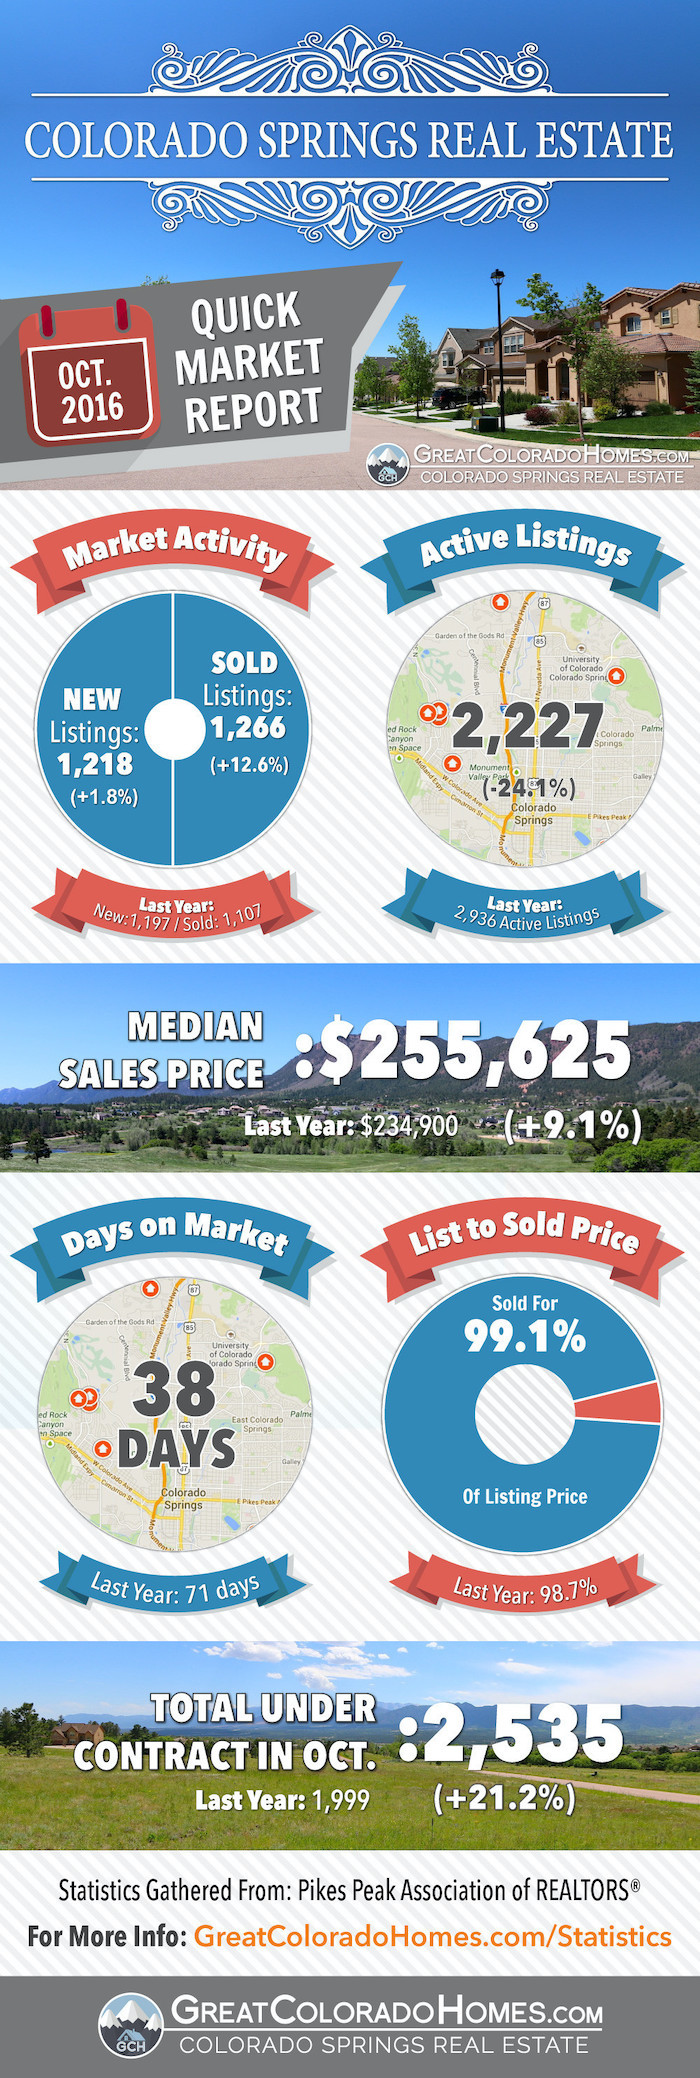 October 2016 Colorado Springs Real Estate Market Report